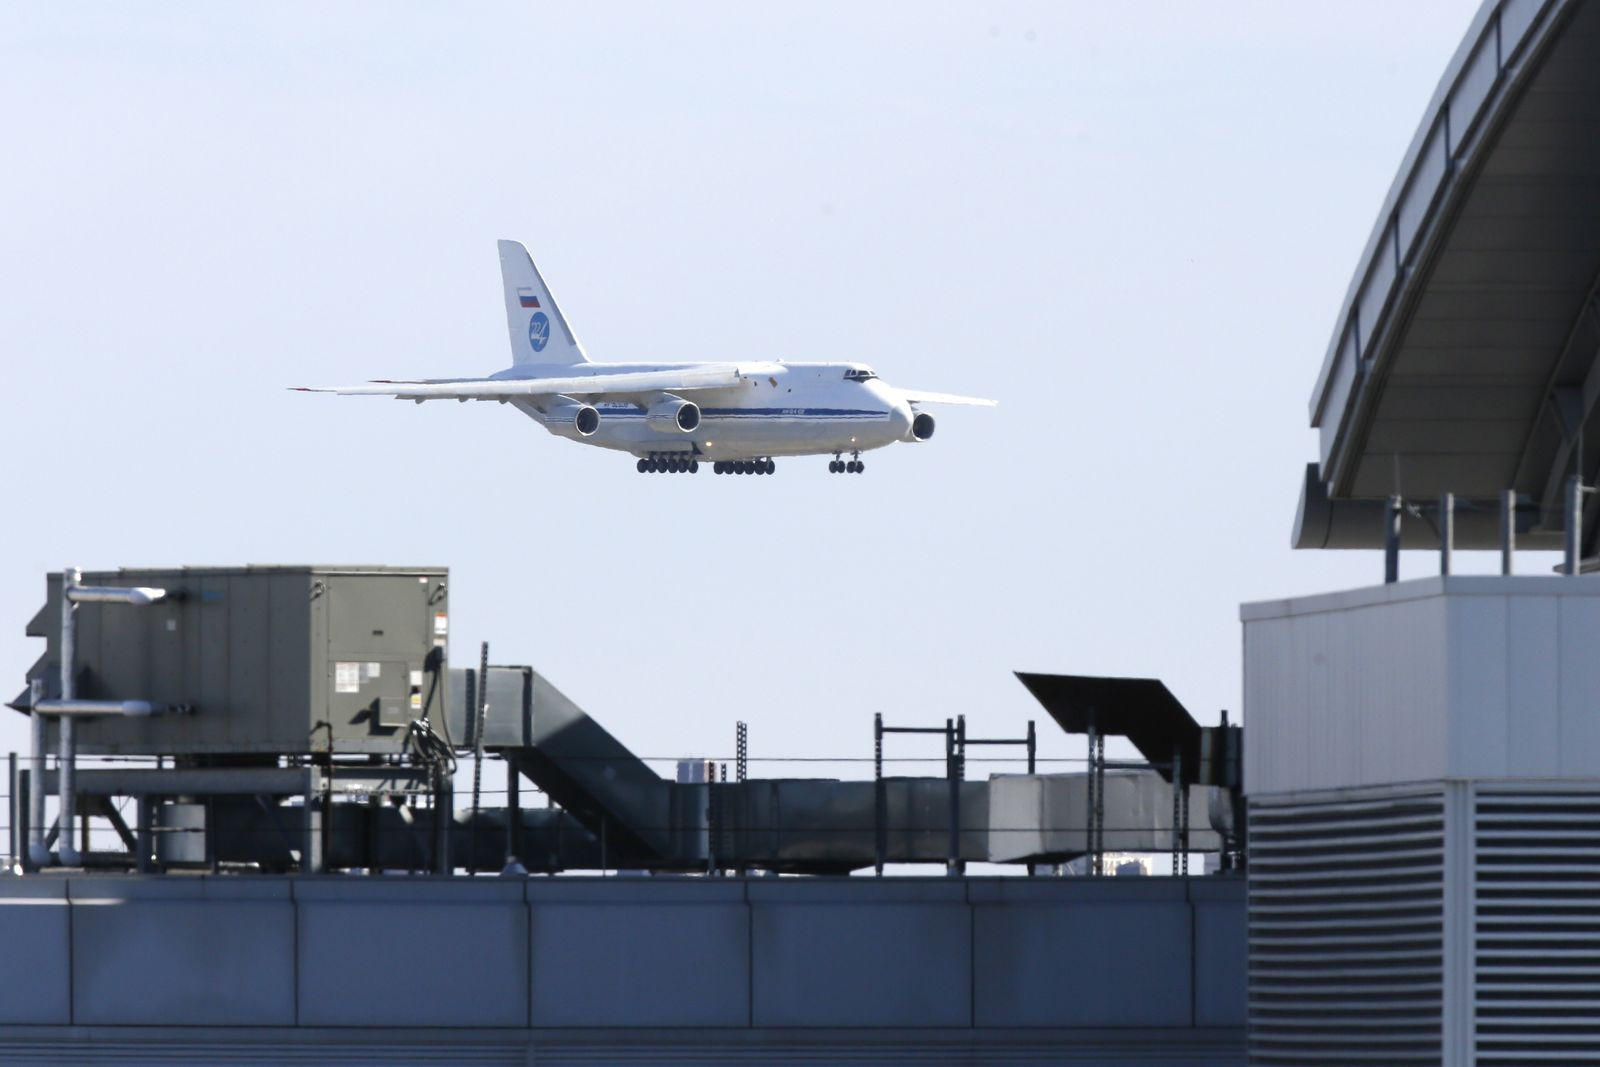 Russian military transport plane carrying medical equipment masks and supplies lands at JFK Airport during outbreak of the coronavirus disease (COVID-19) in New York